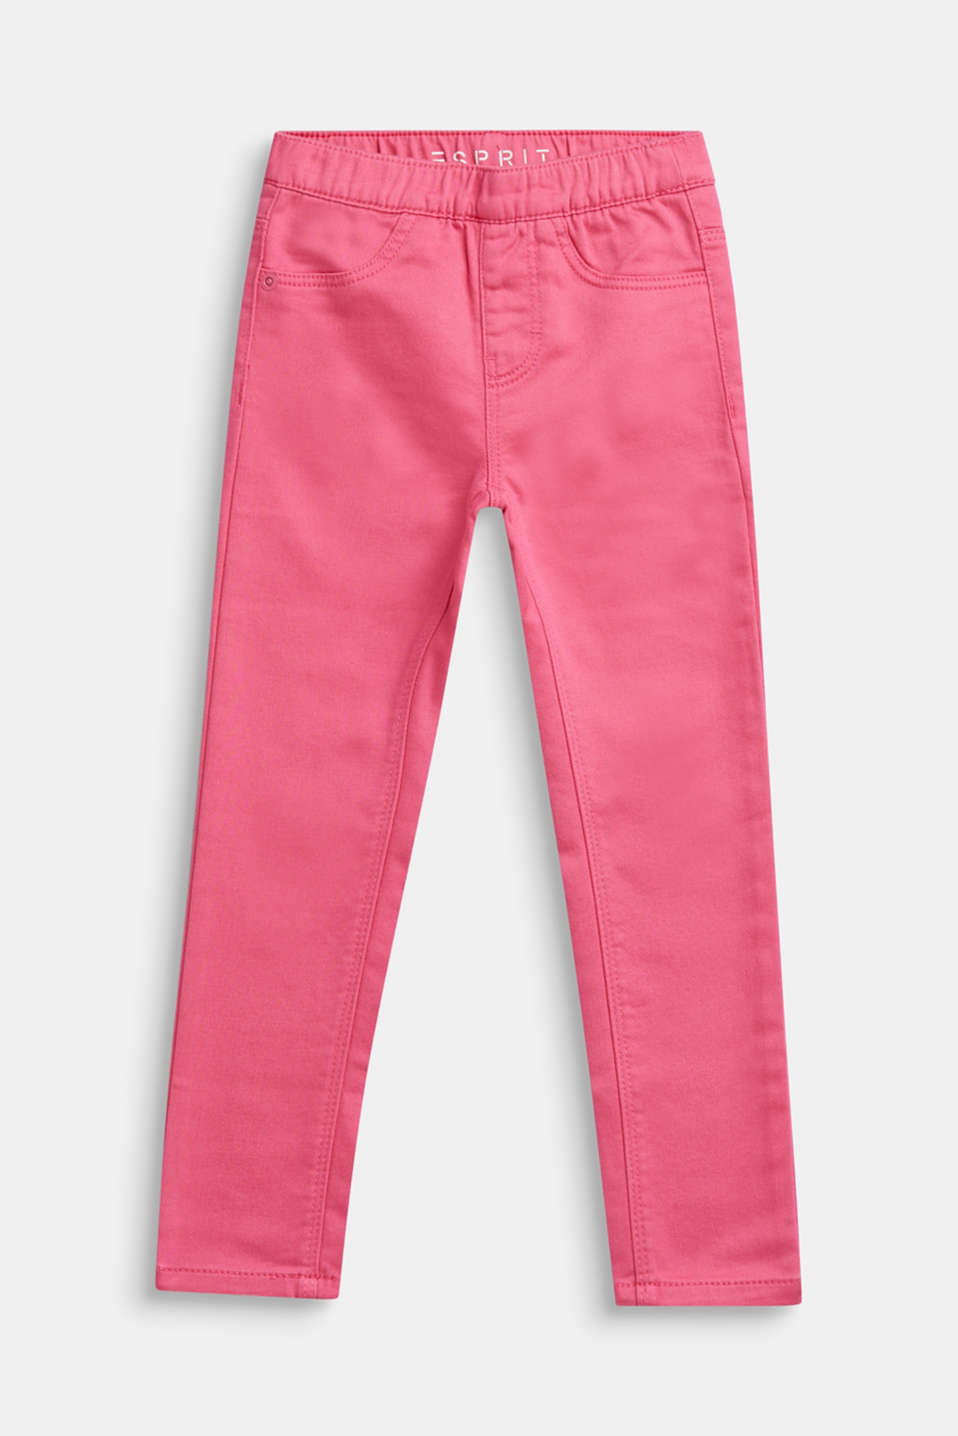 Esprit - Treggings made of soft woven fabric